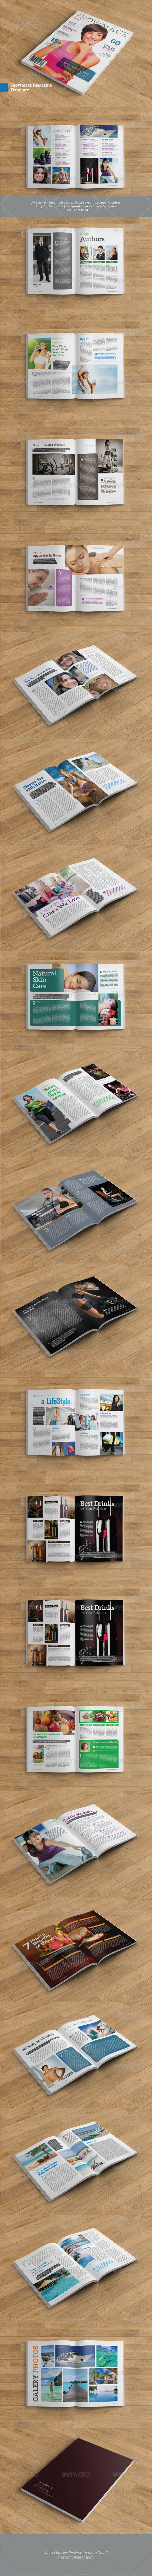 GraphicRiver A4 Showmagz Magazine Template 6412909